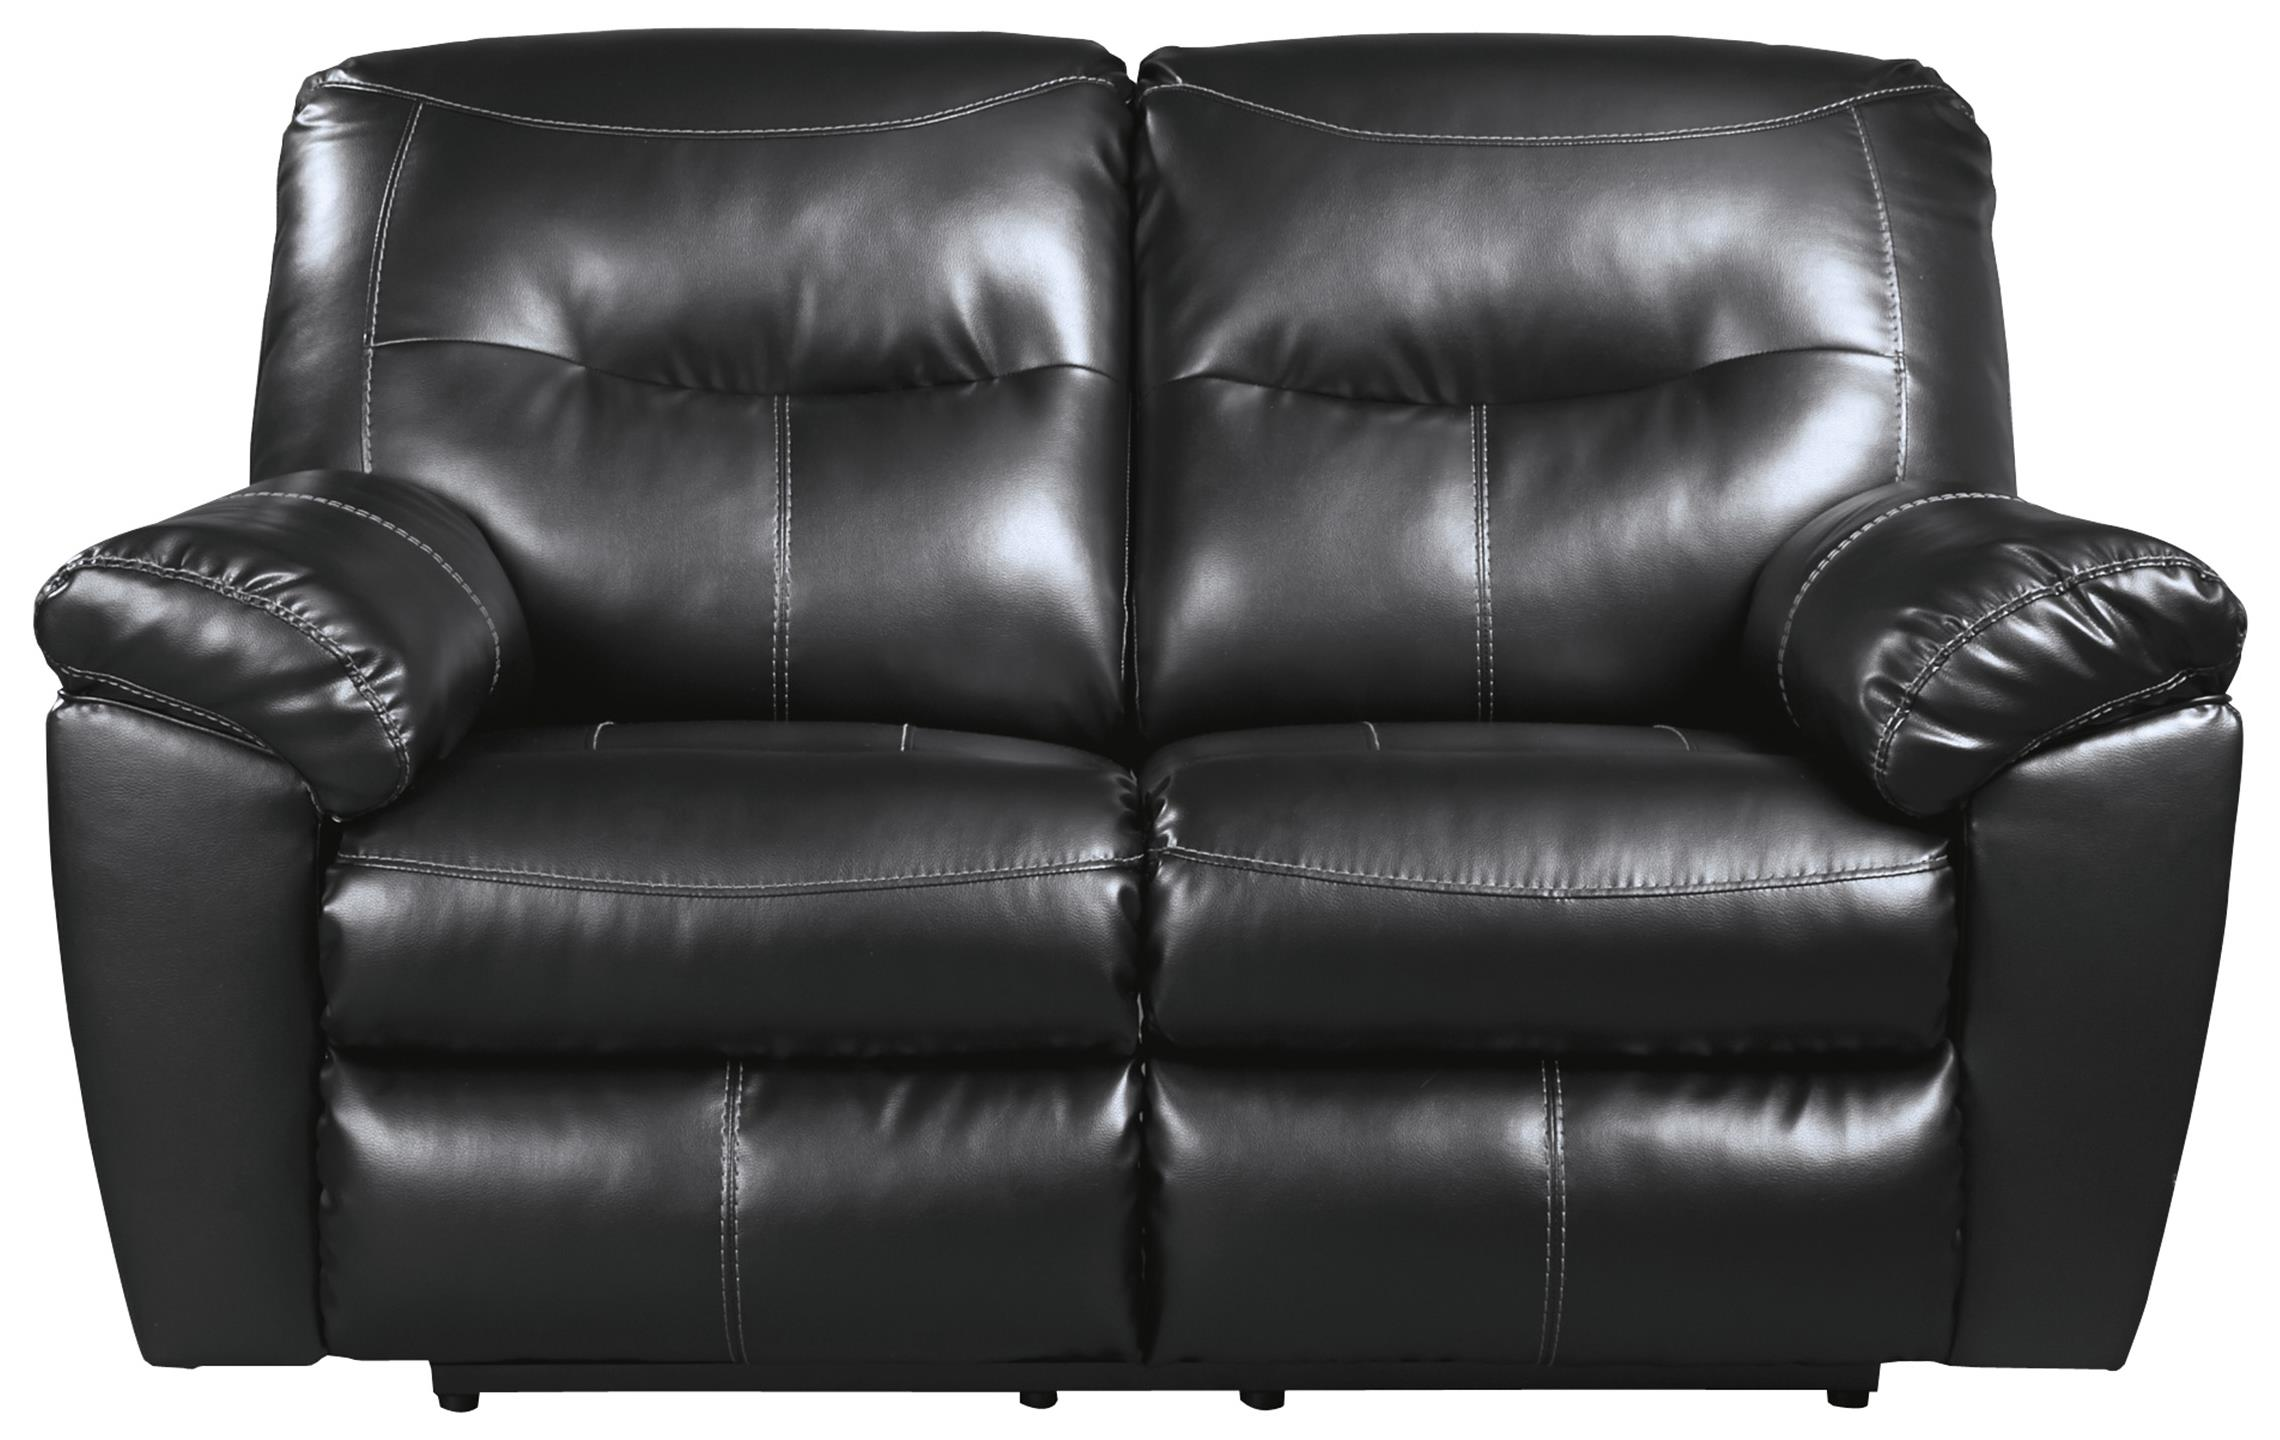 Signature Design by Ashley Kilzer DuraBlend® Reclining Loveseat - Item Number: 8470186